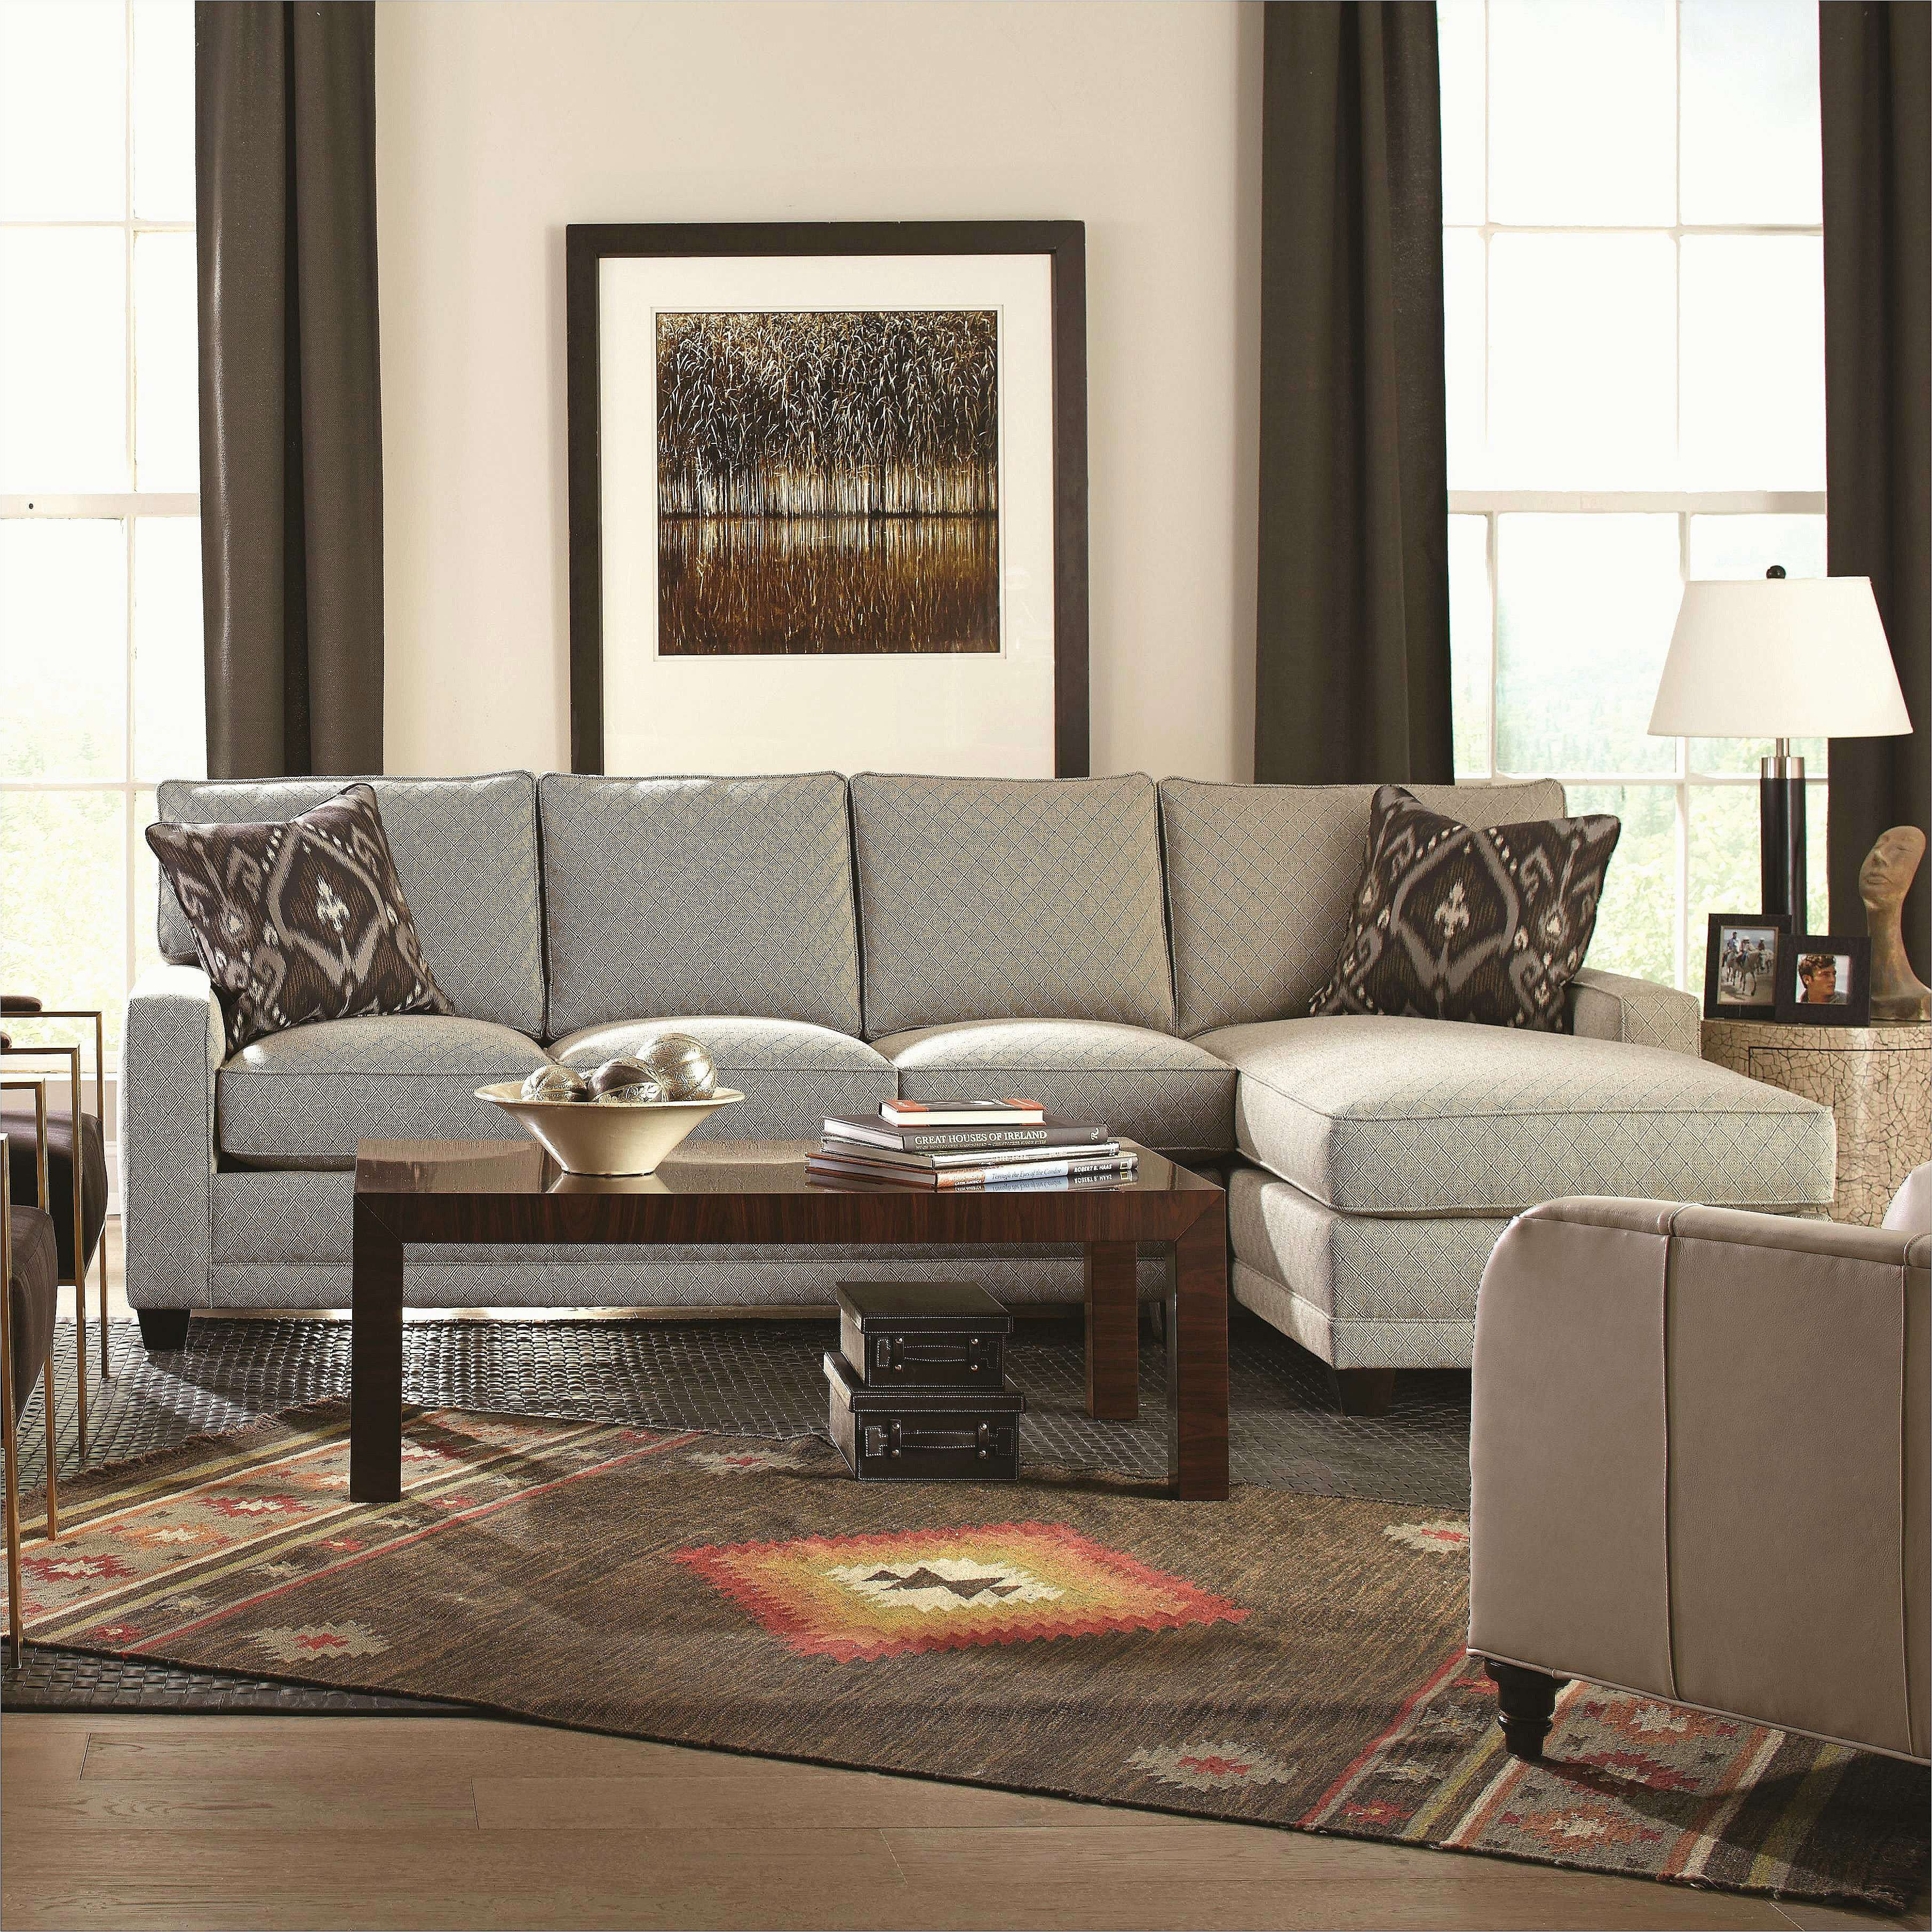 bedroom ideas with dark hardwood floors of small space bedroom furniture inside modern living room furniture new gunstige sofa macys furniture 0d design family room design ideas